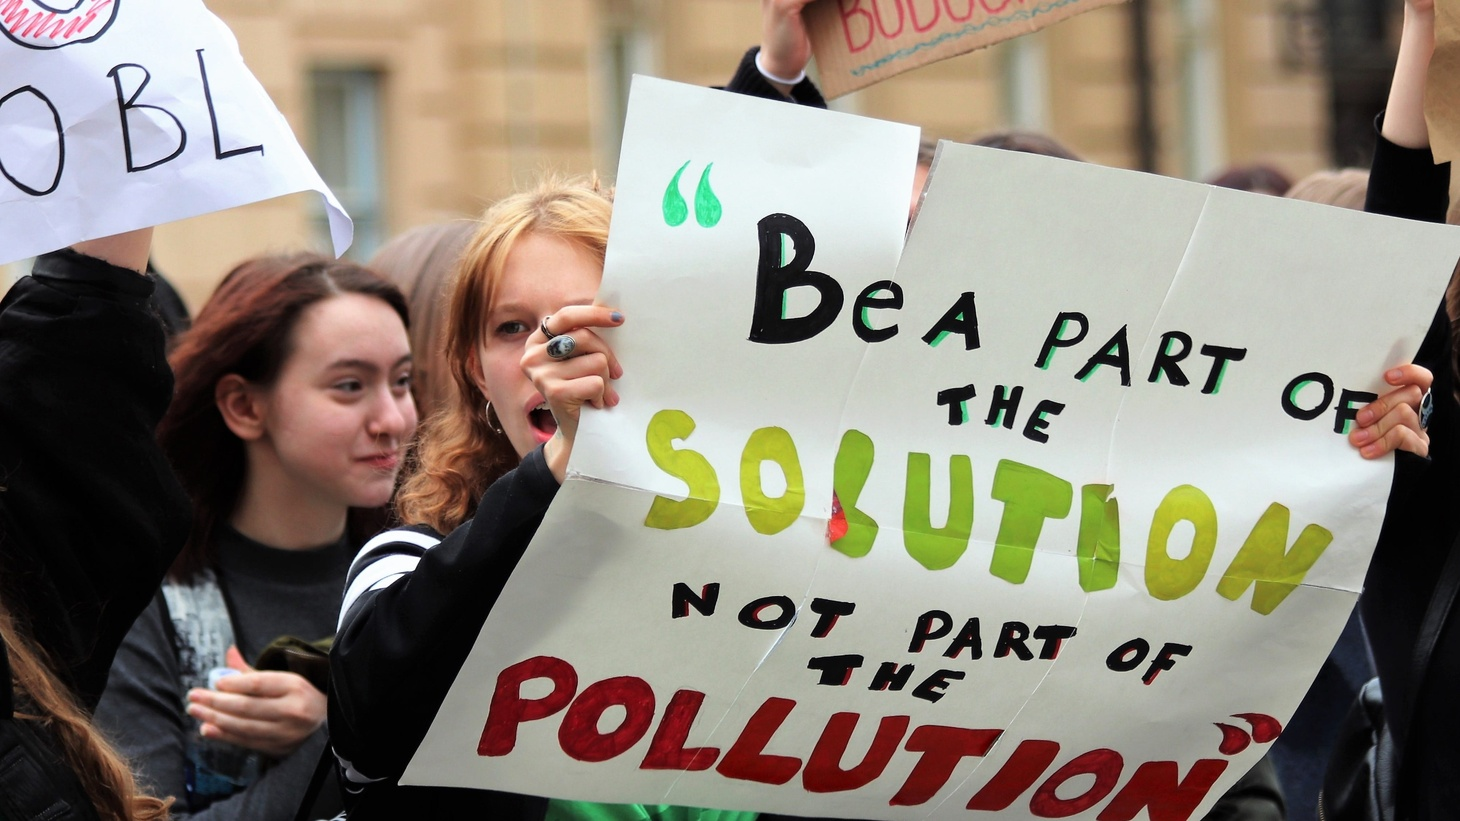 """A woman at a climate rally holds a sign saying, """"Be a part of the solution, not part of the pollution."""""""